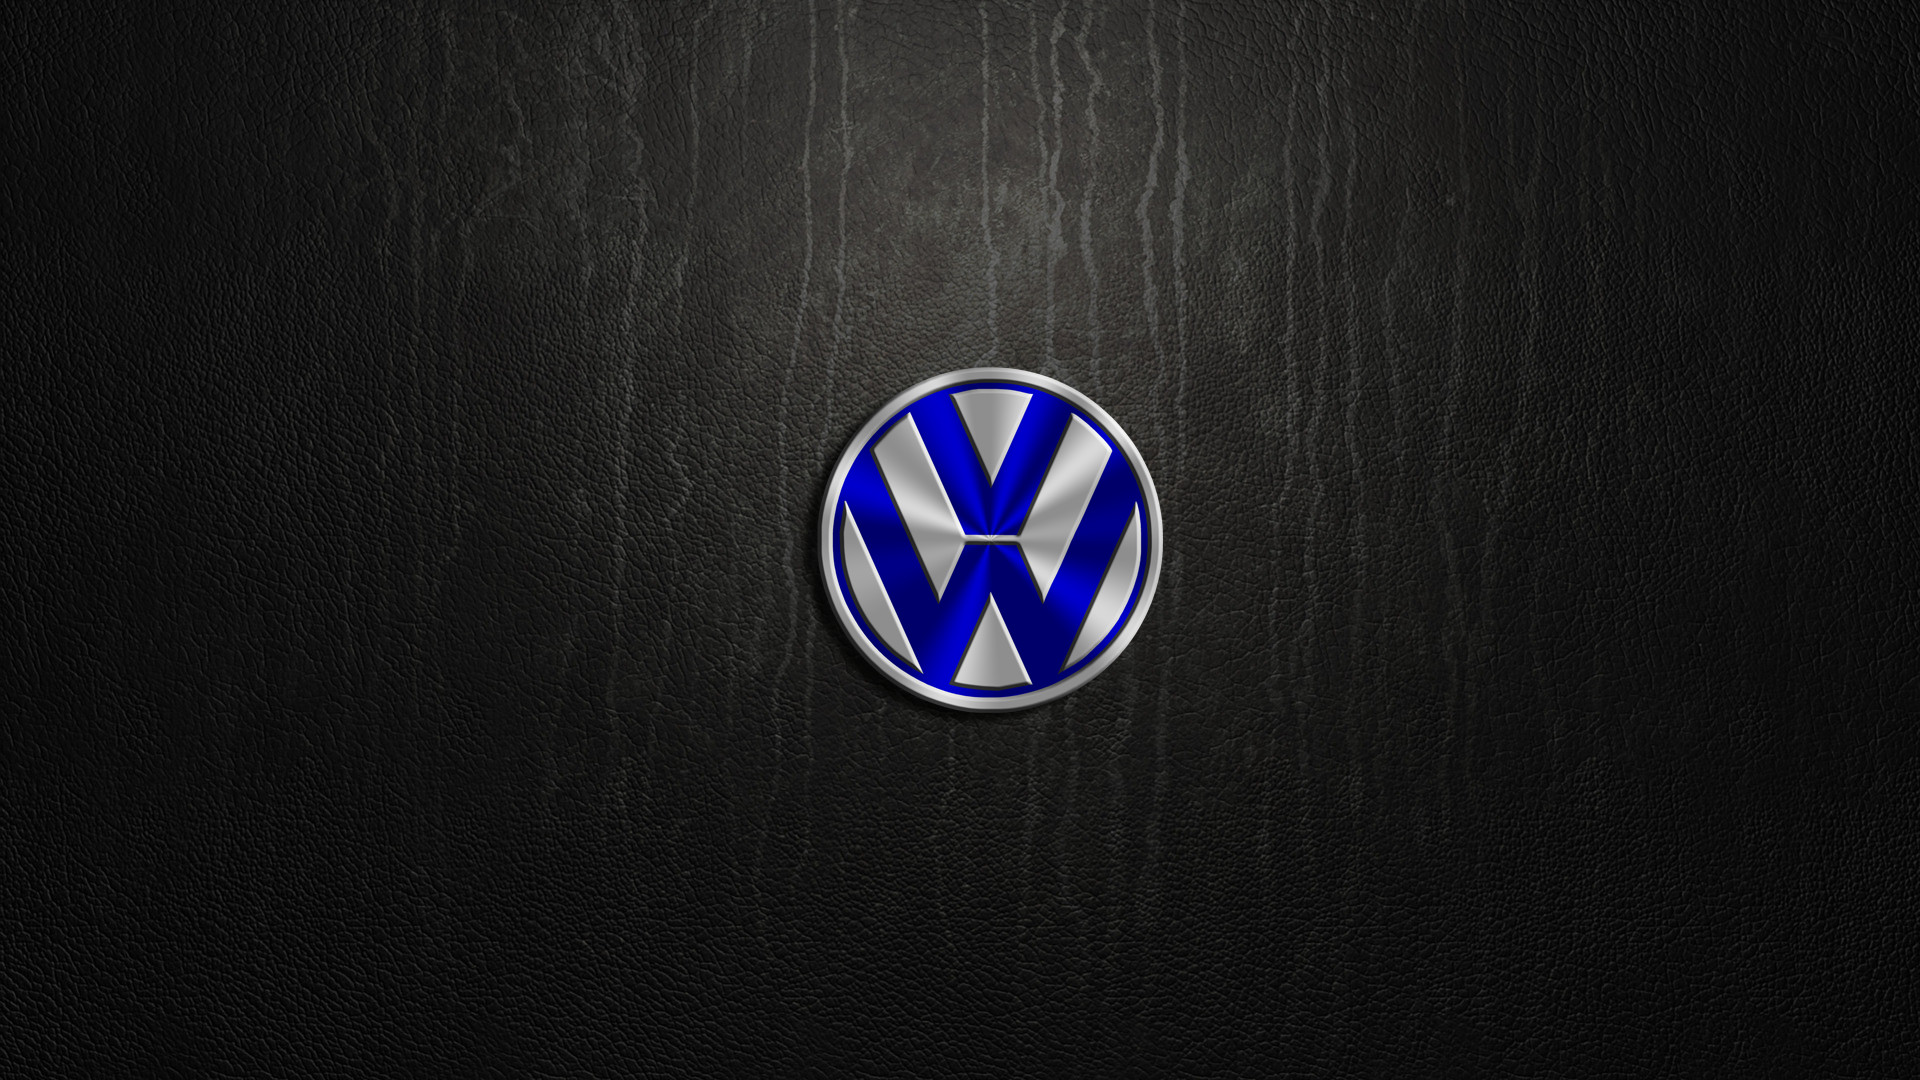 Volkswagen Wallpaper Picture #1Yw | Cars | Pinterest | Wallpaper pictures,  Volkswagen and Wallpaper